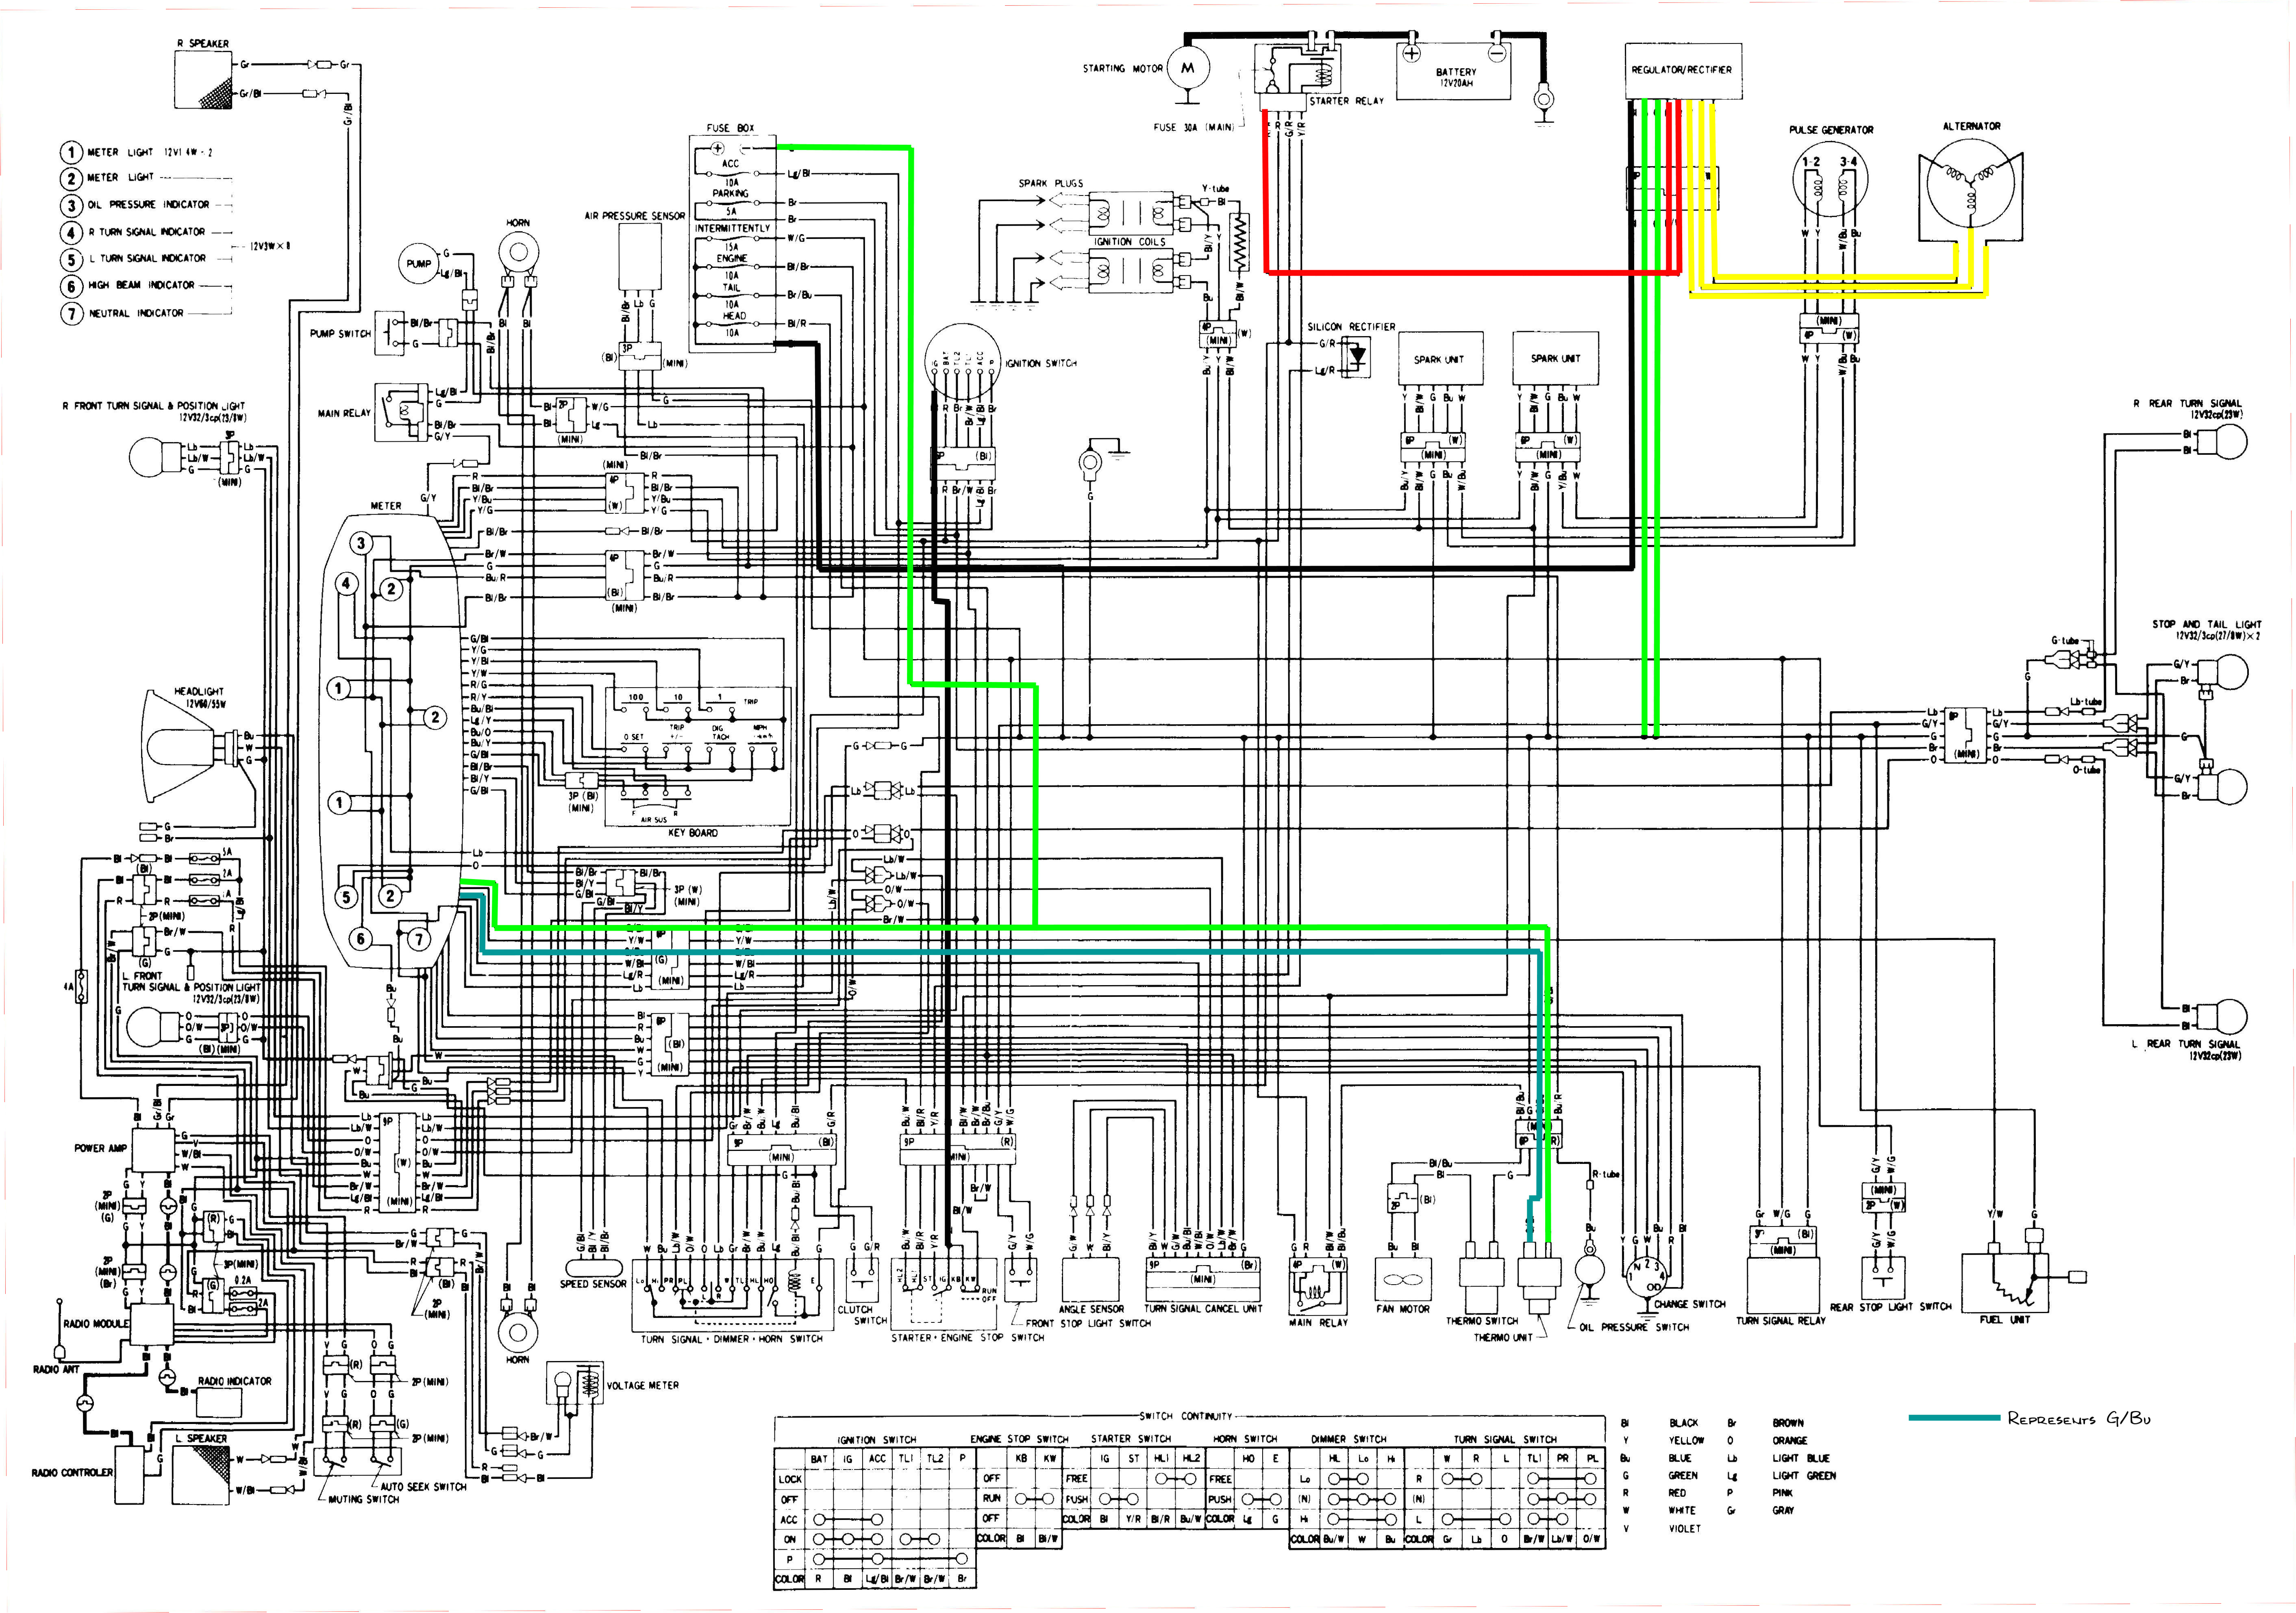 83 goldwing wiring diagram wiring diagrams gl1100 standard 1983 color schematic diagram 517 kb